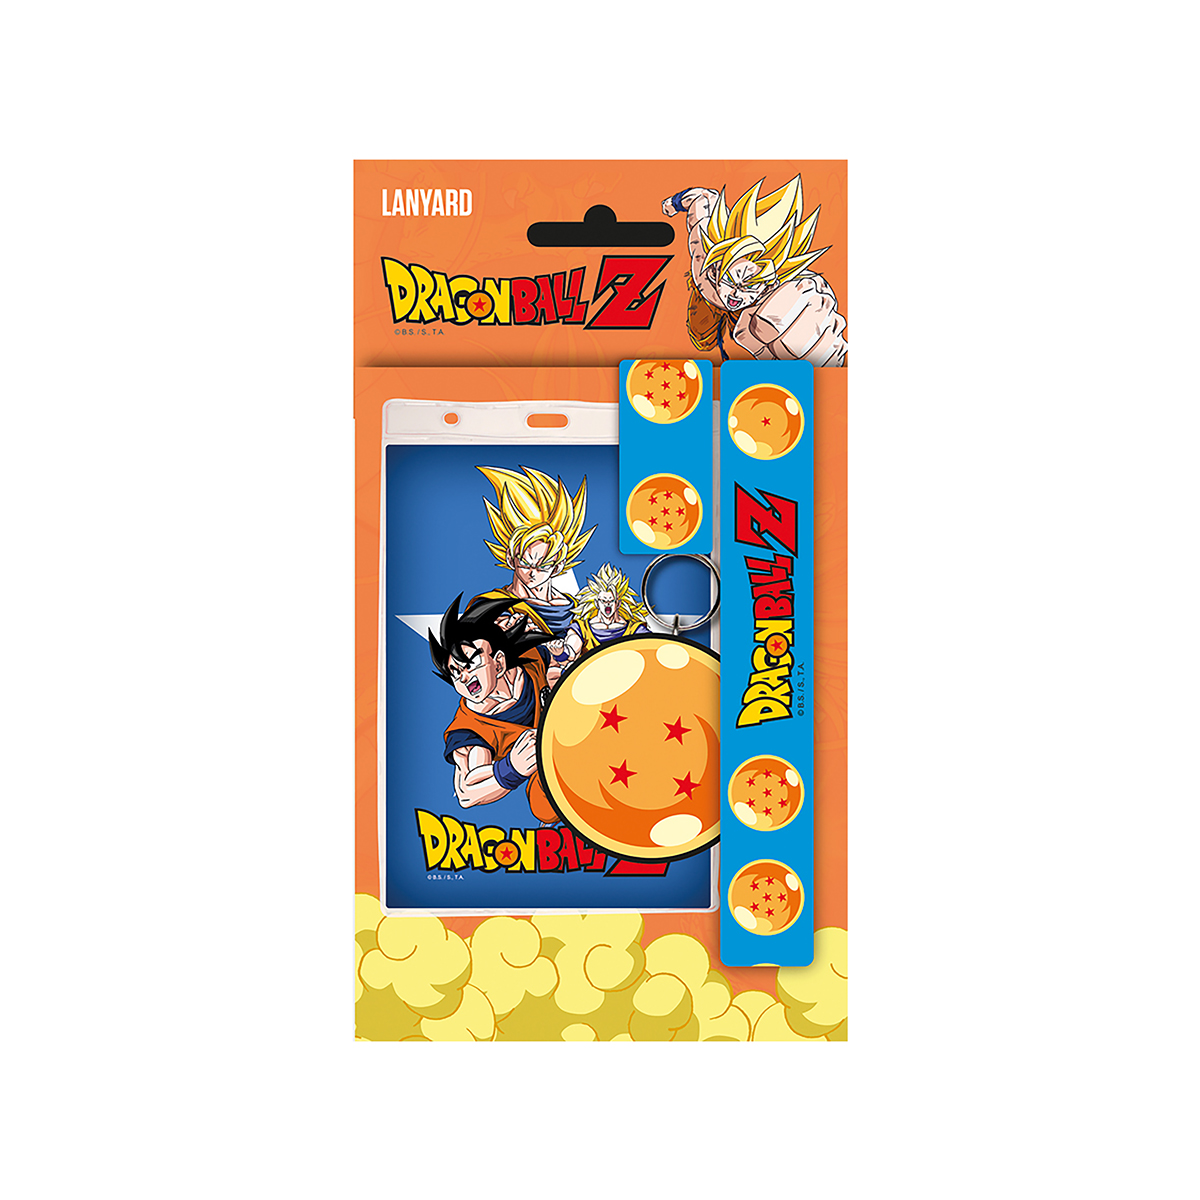 Dragon Ball Z lanyard